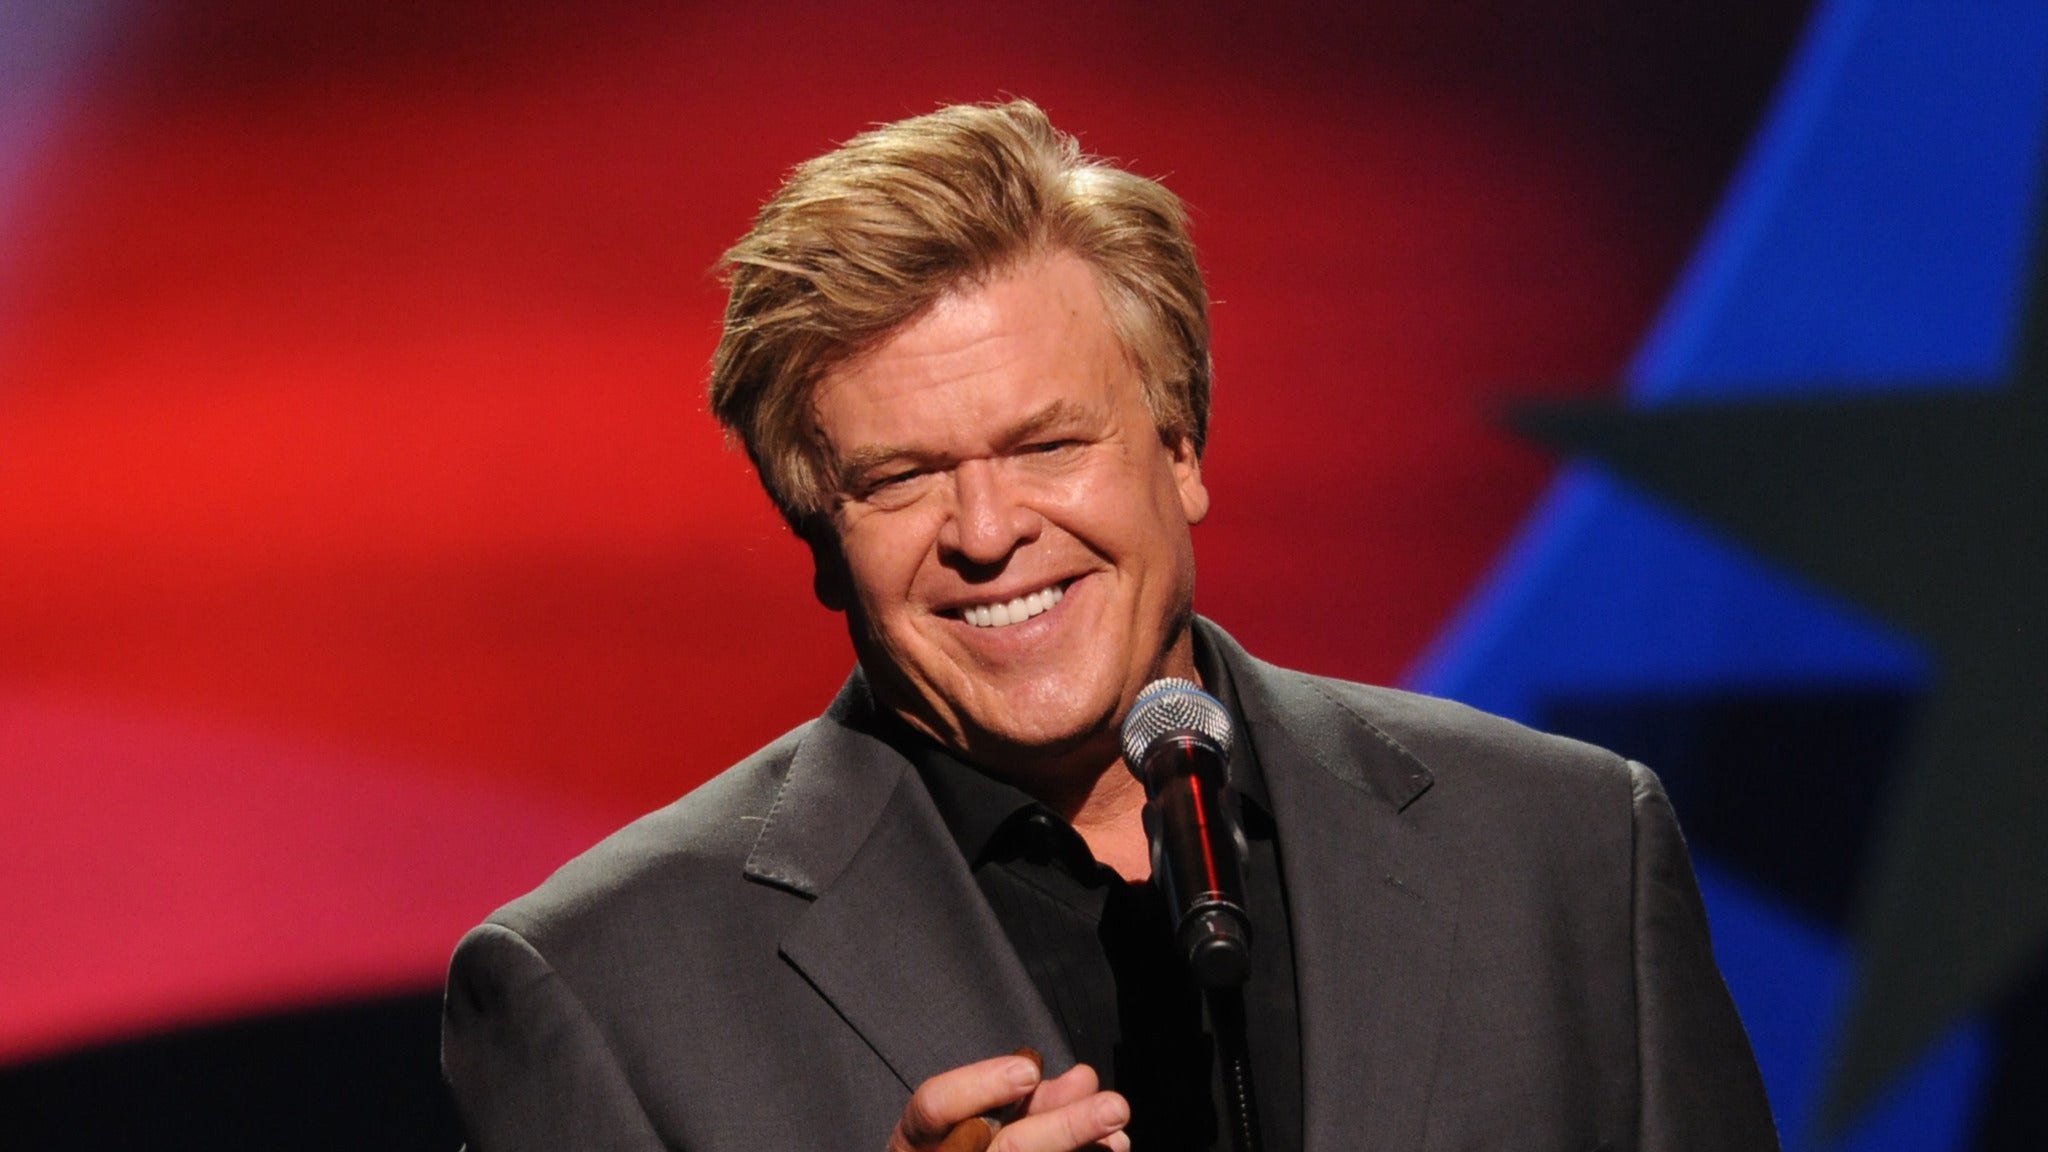 Ron White at Neal S Blaisdell Concert Hall